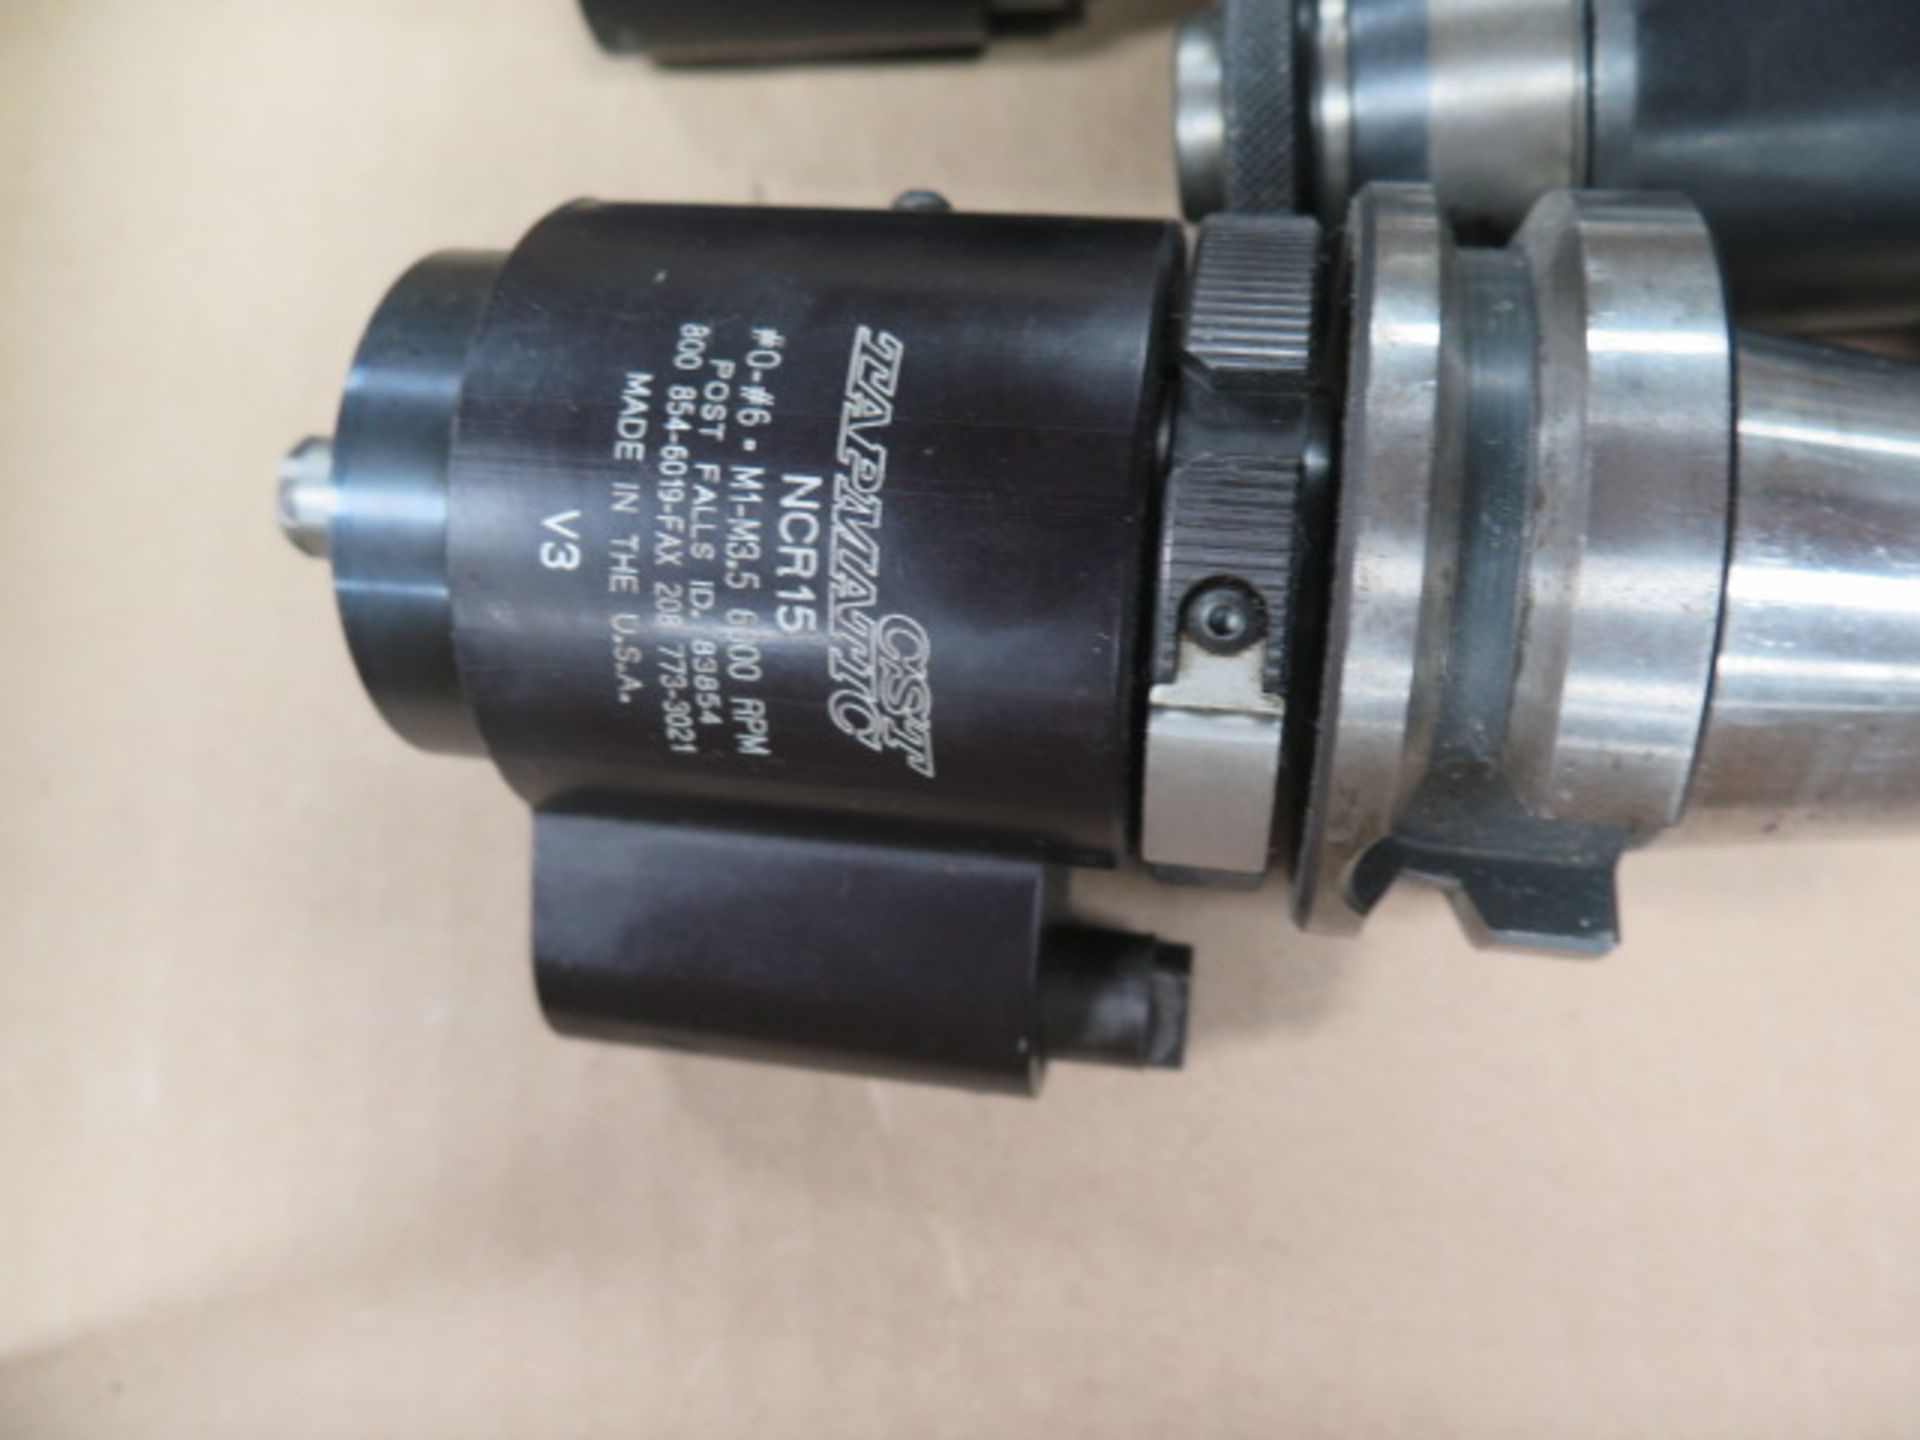 BT-40 Taper Tapmatic Tapping Heads (2) and CNC Tapping Head (SOLD AS-IS - NO WARRANTY) - Image 4 of 5